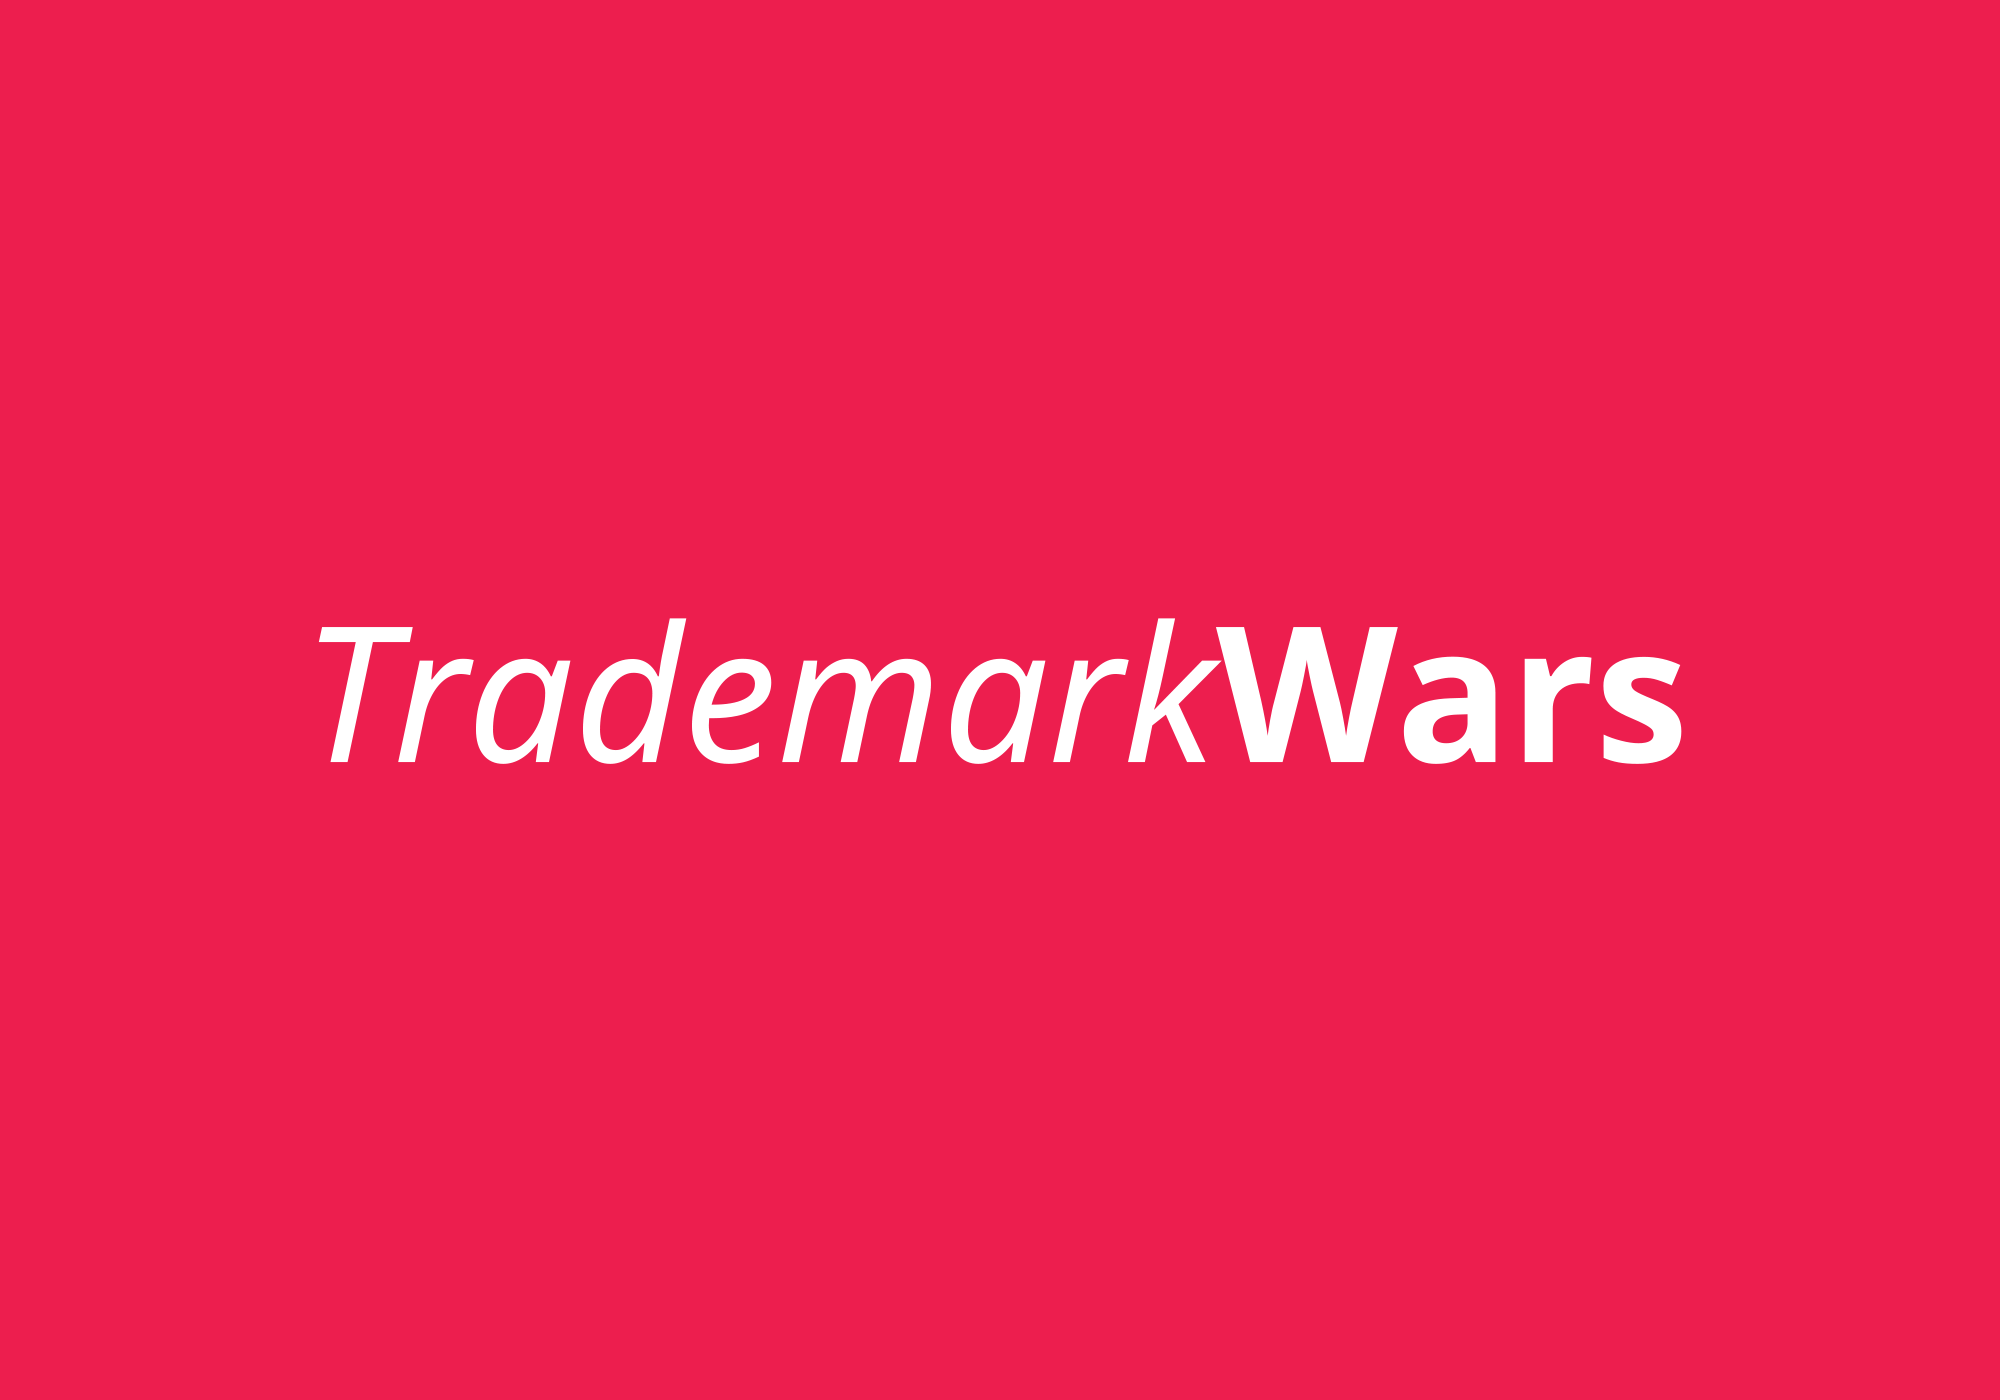 The Trademark Wars